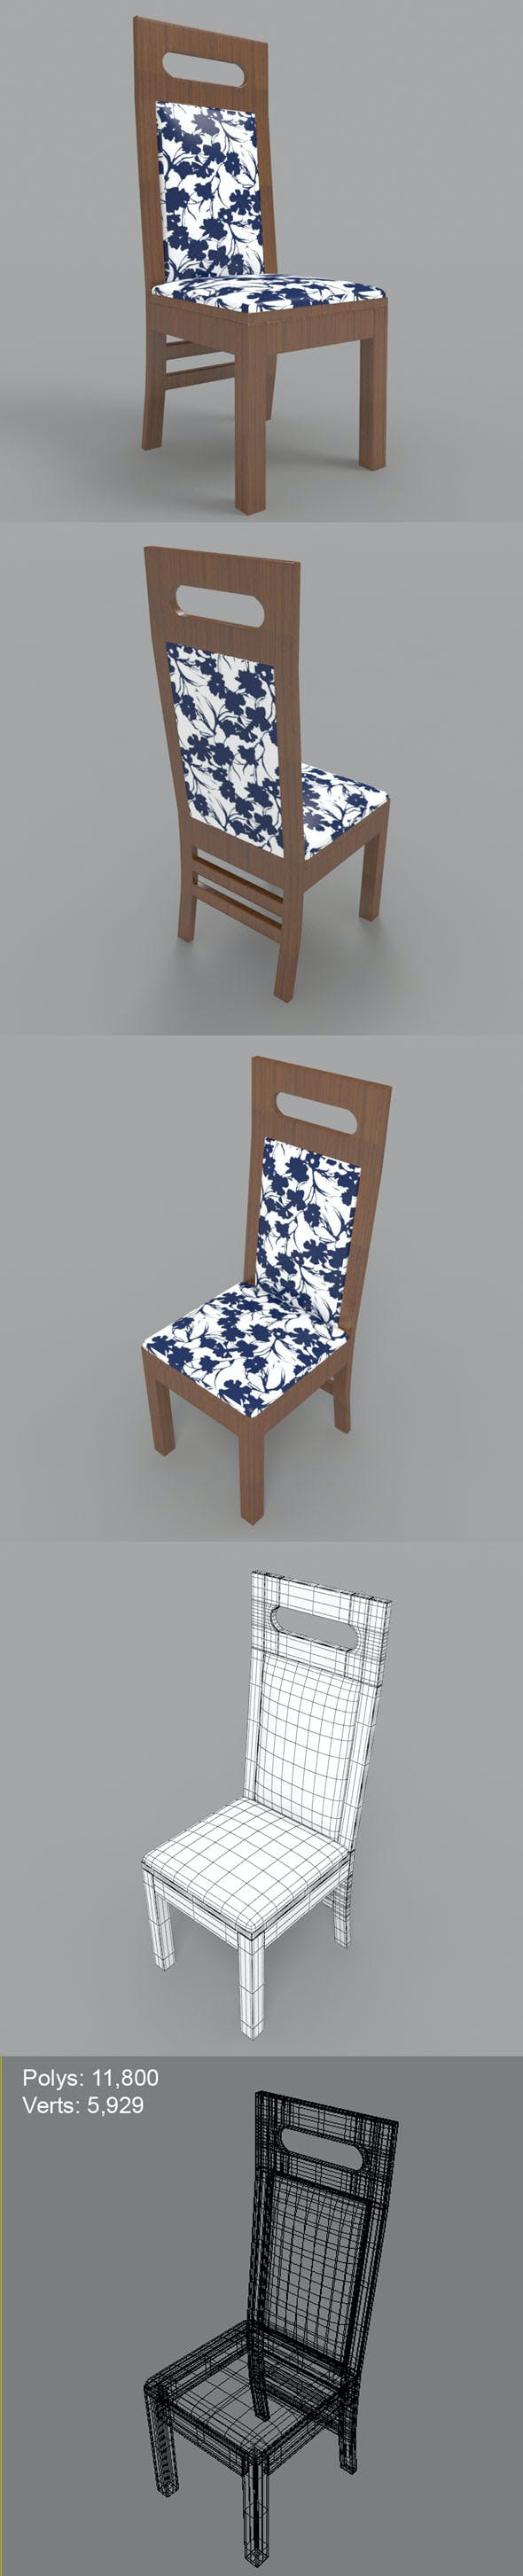 Dining Chair-3 - 3DOcean Item for Sale